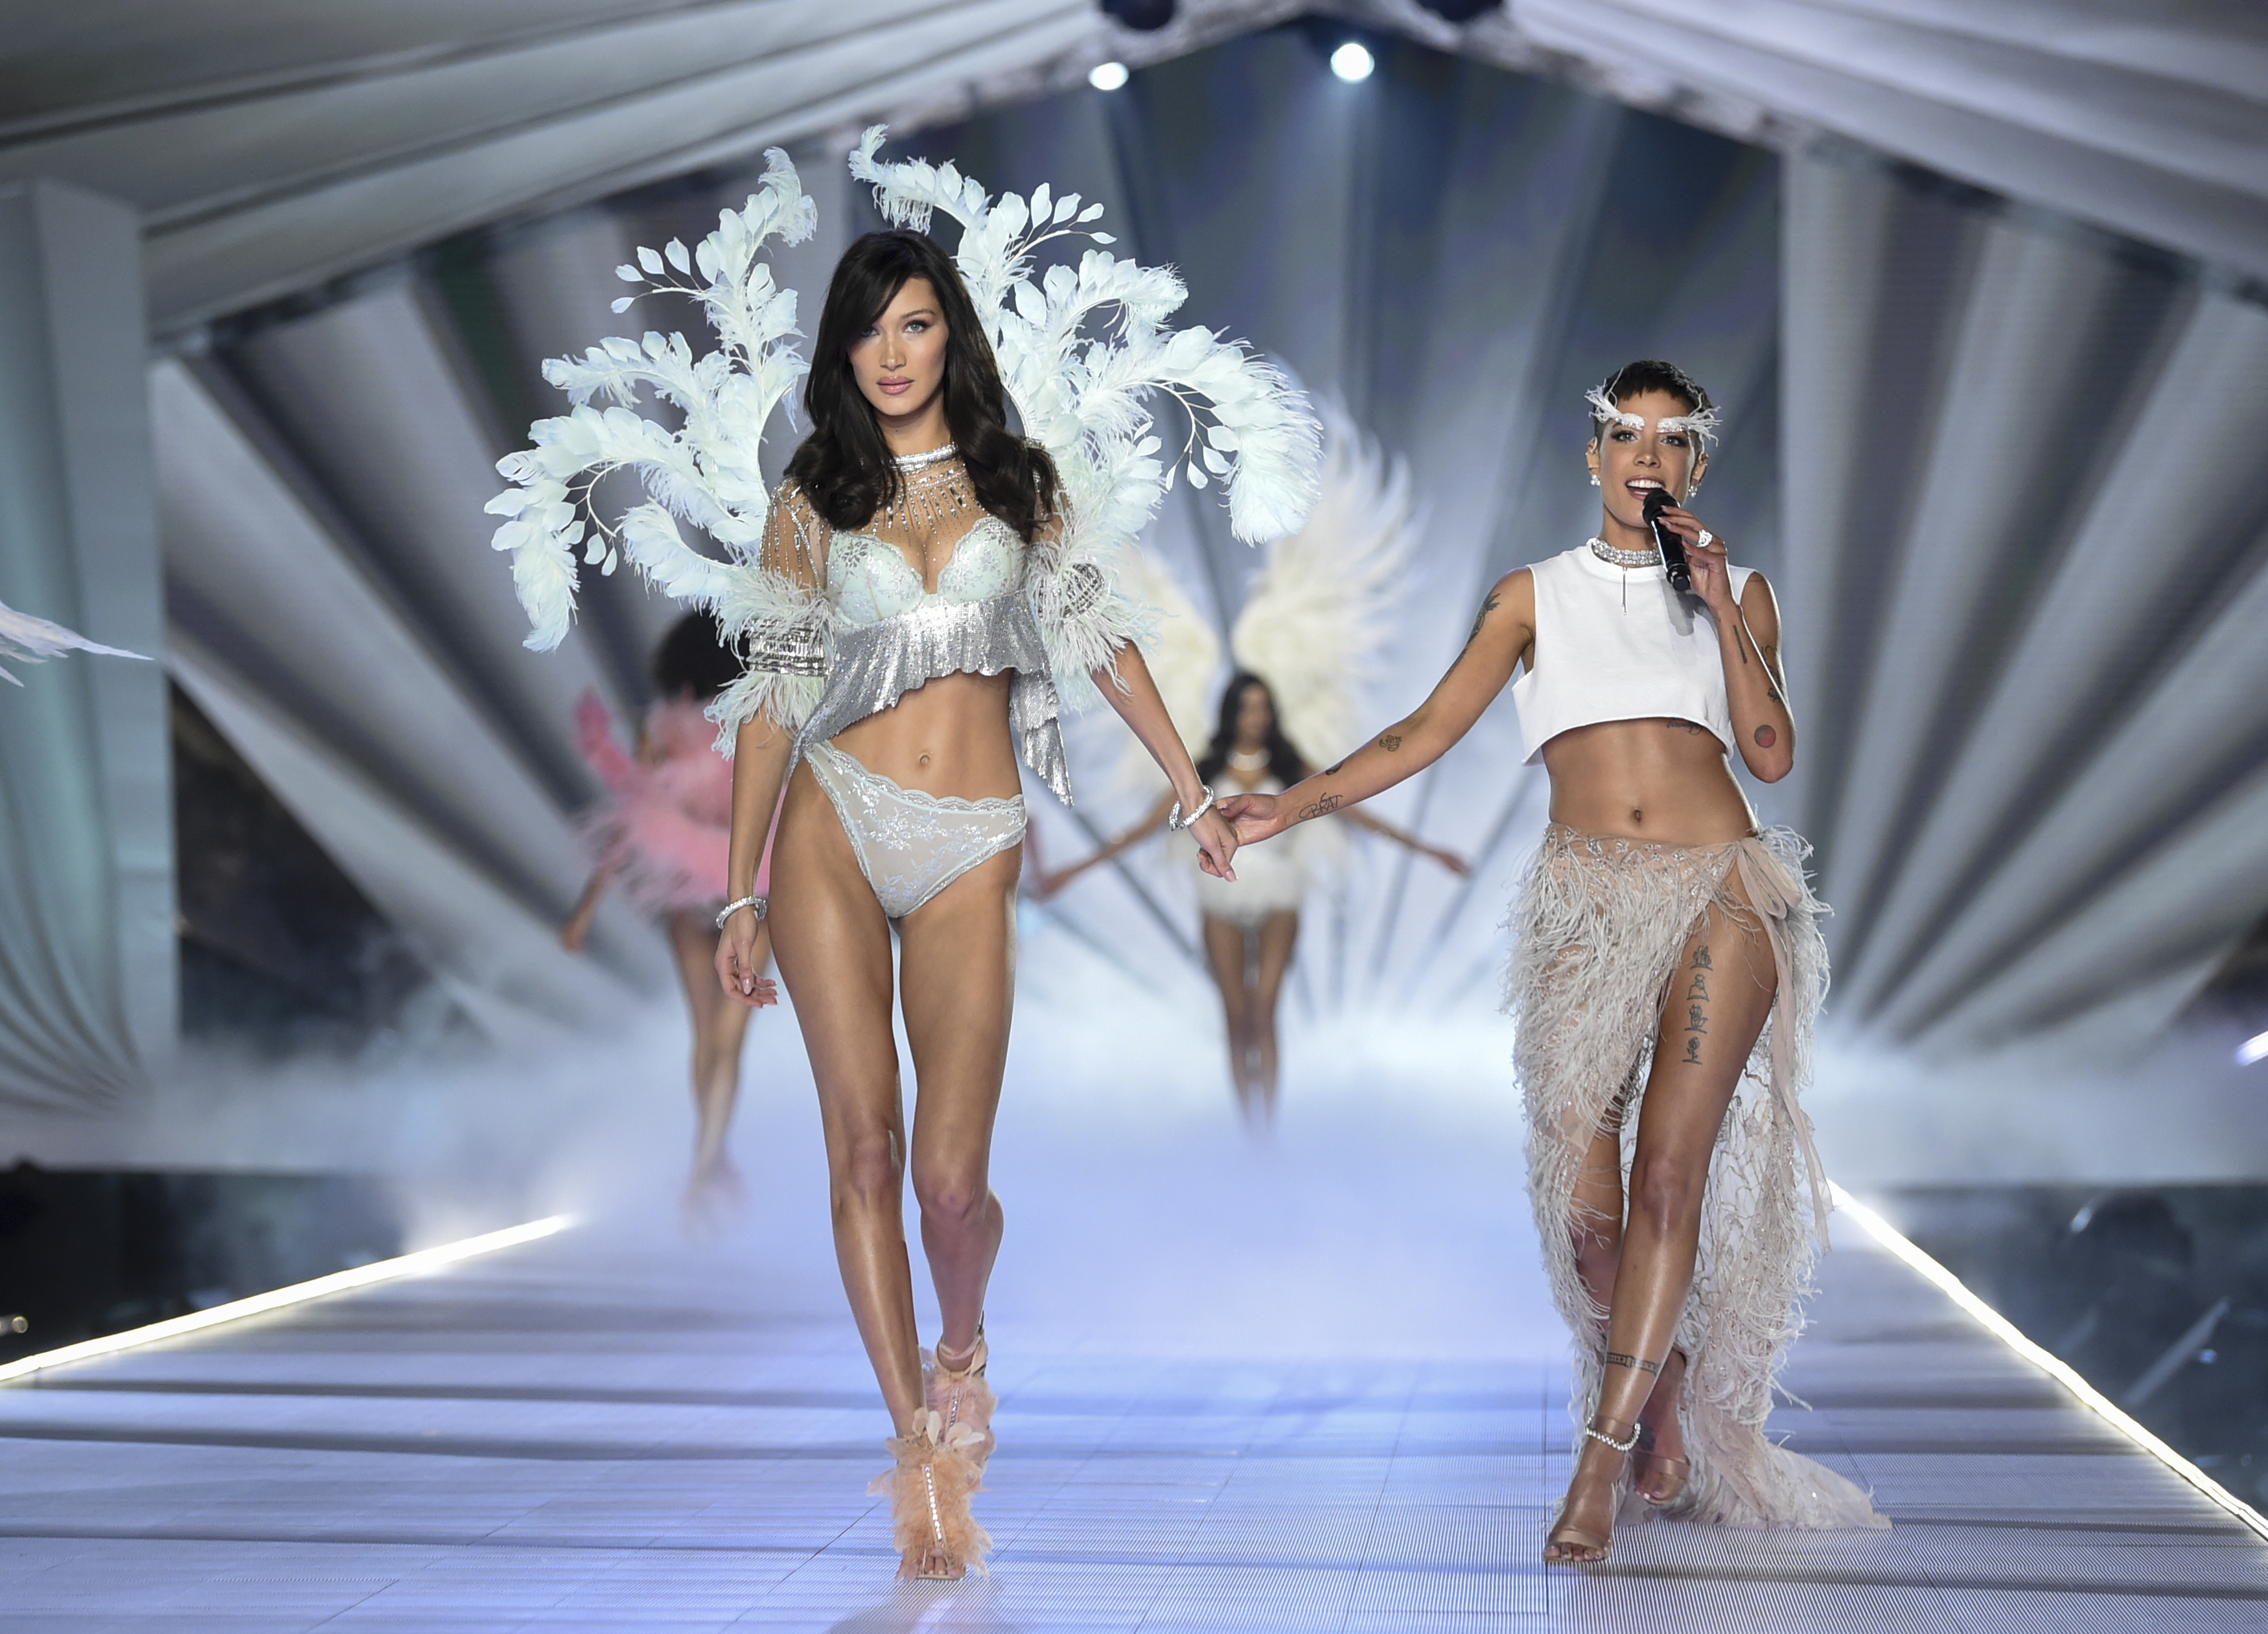 Model Bella Hadid, left, walks the runway as singer Halsey performs during the 2018 Victoria's Secret Fashion Show 2018